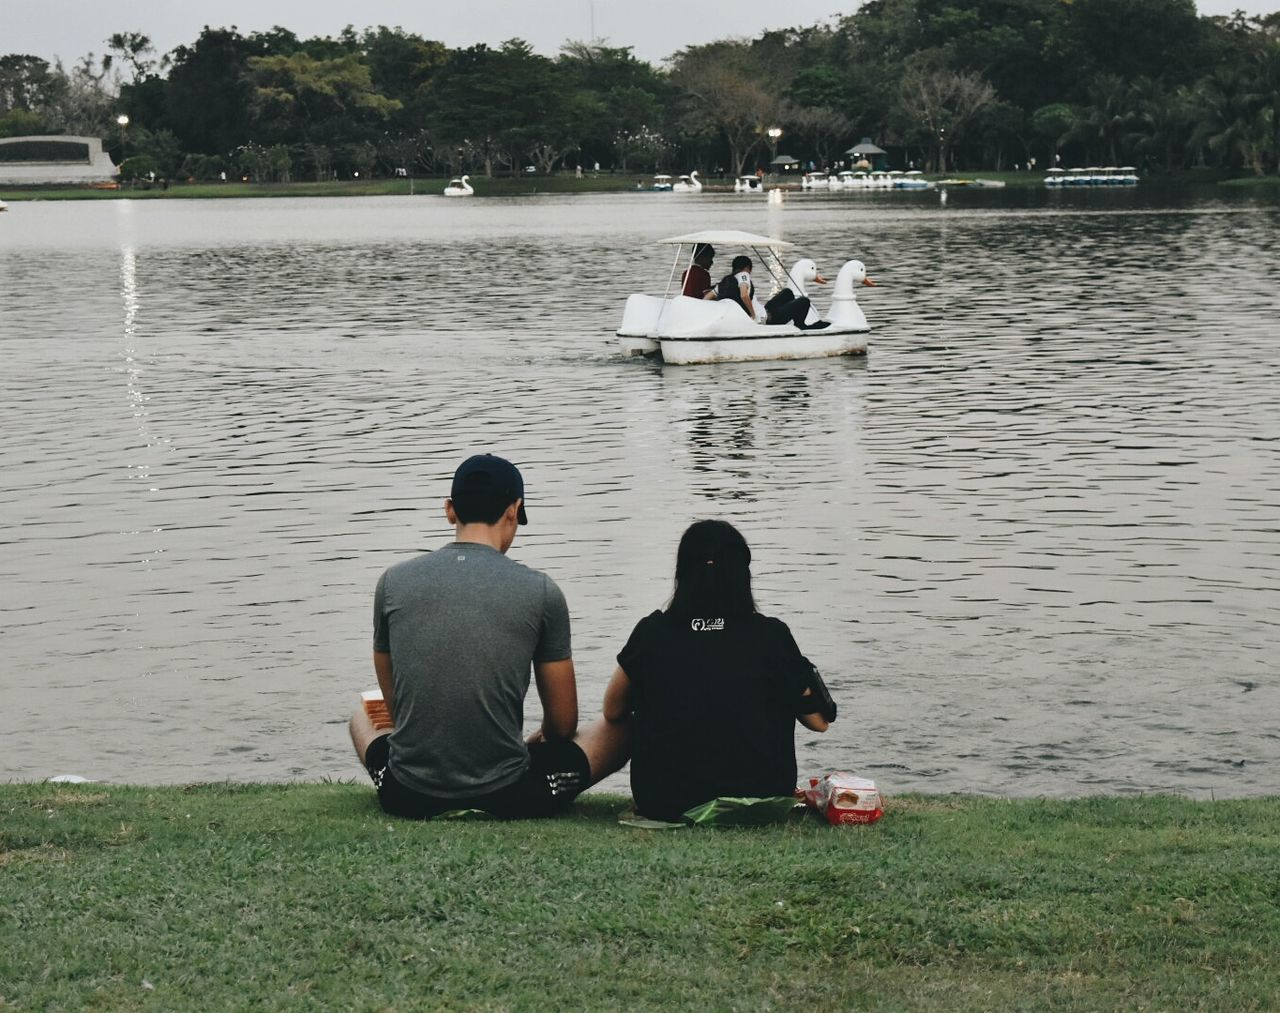 water, real people, rear view, sitting, lake, two people, tree, leisure activity, women, lifestyles, men, day, grass, togetherness, outdoors, nature, vacations, full length, swan, people